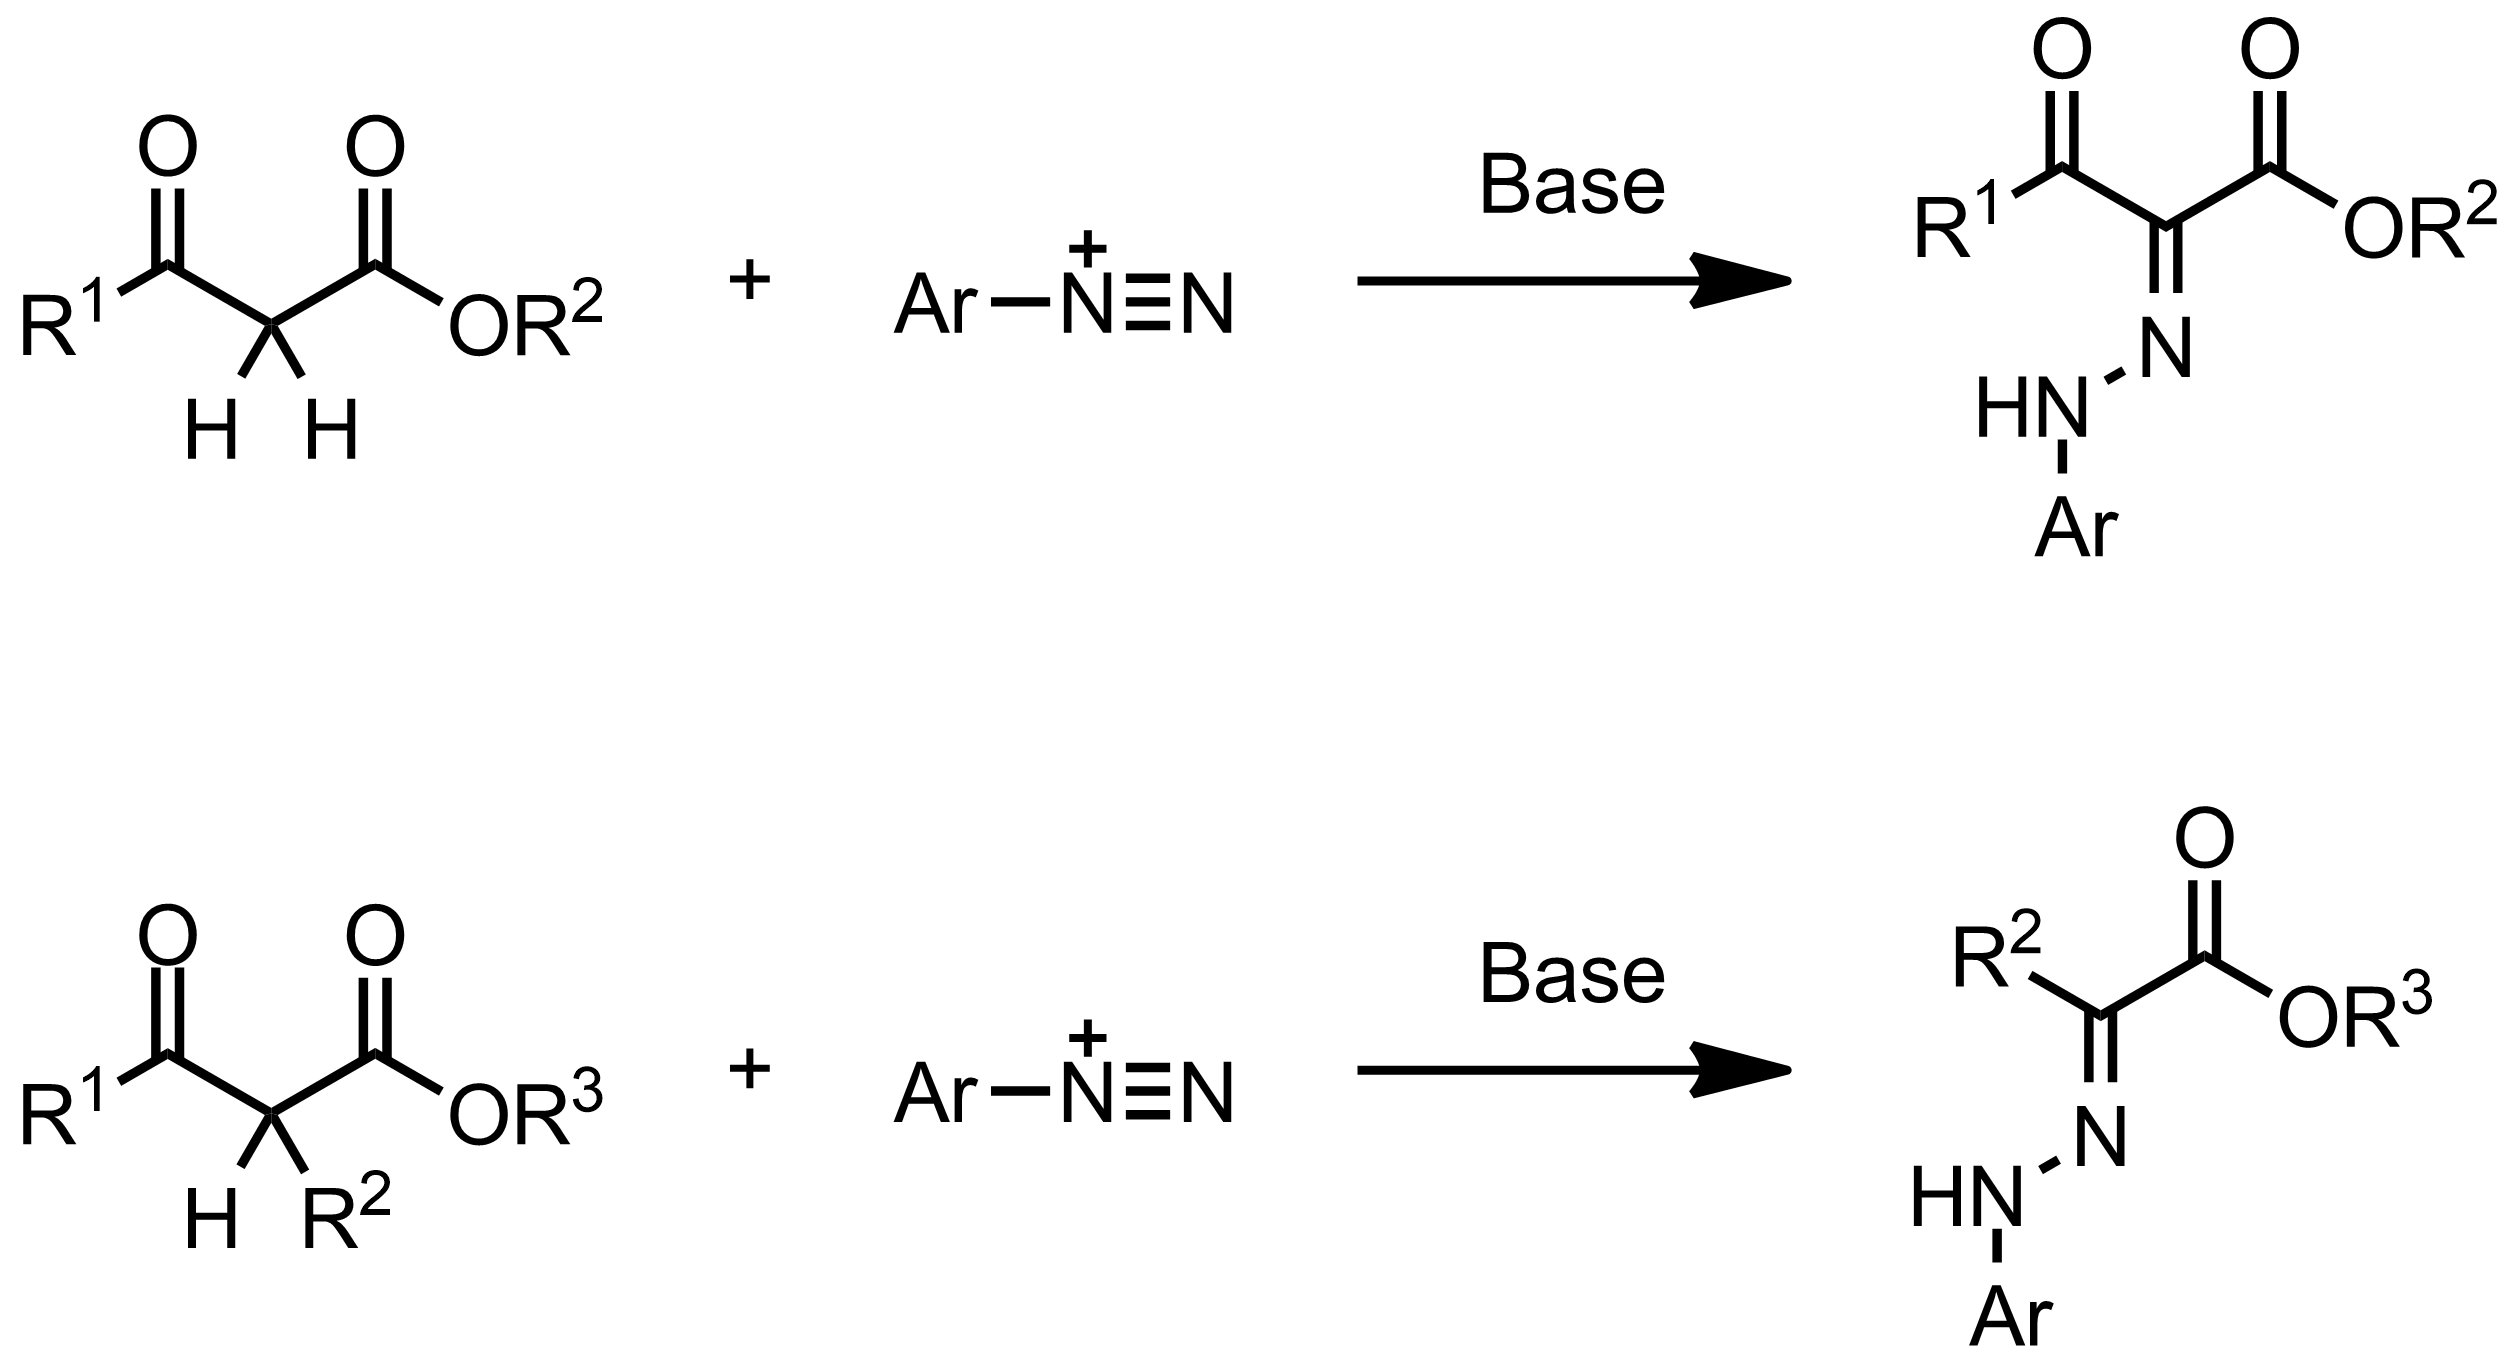 Schematic representation of the Japp-Klingemann Reaction.